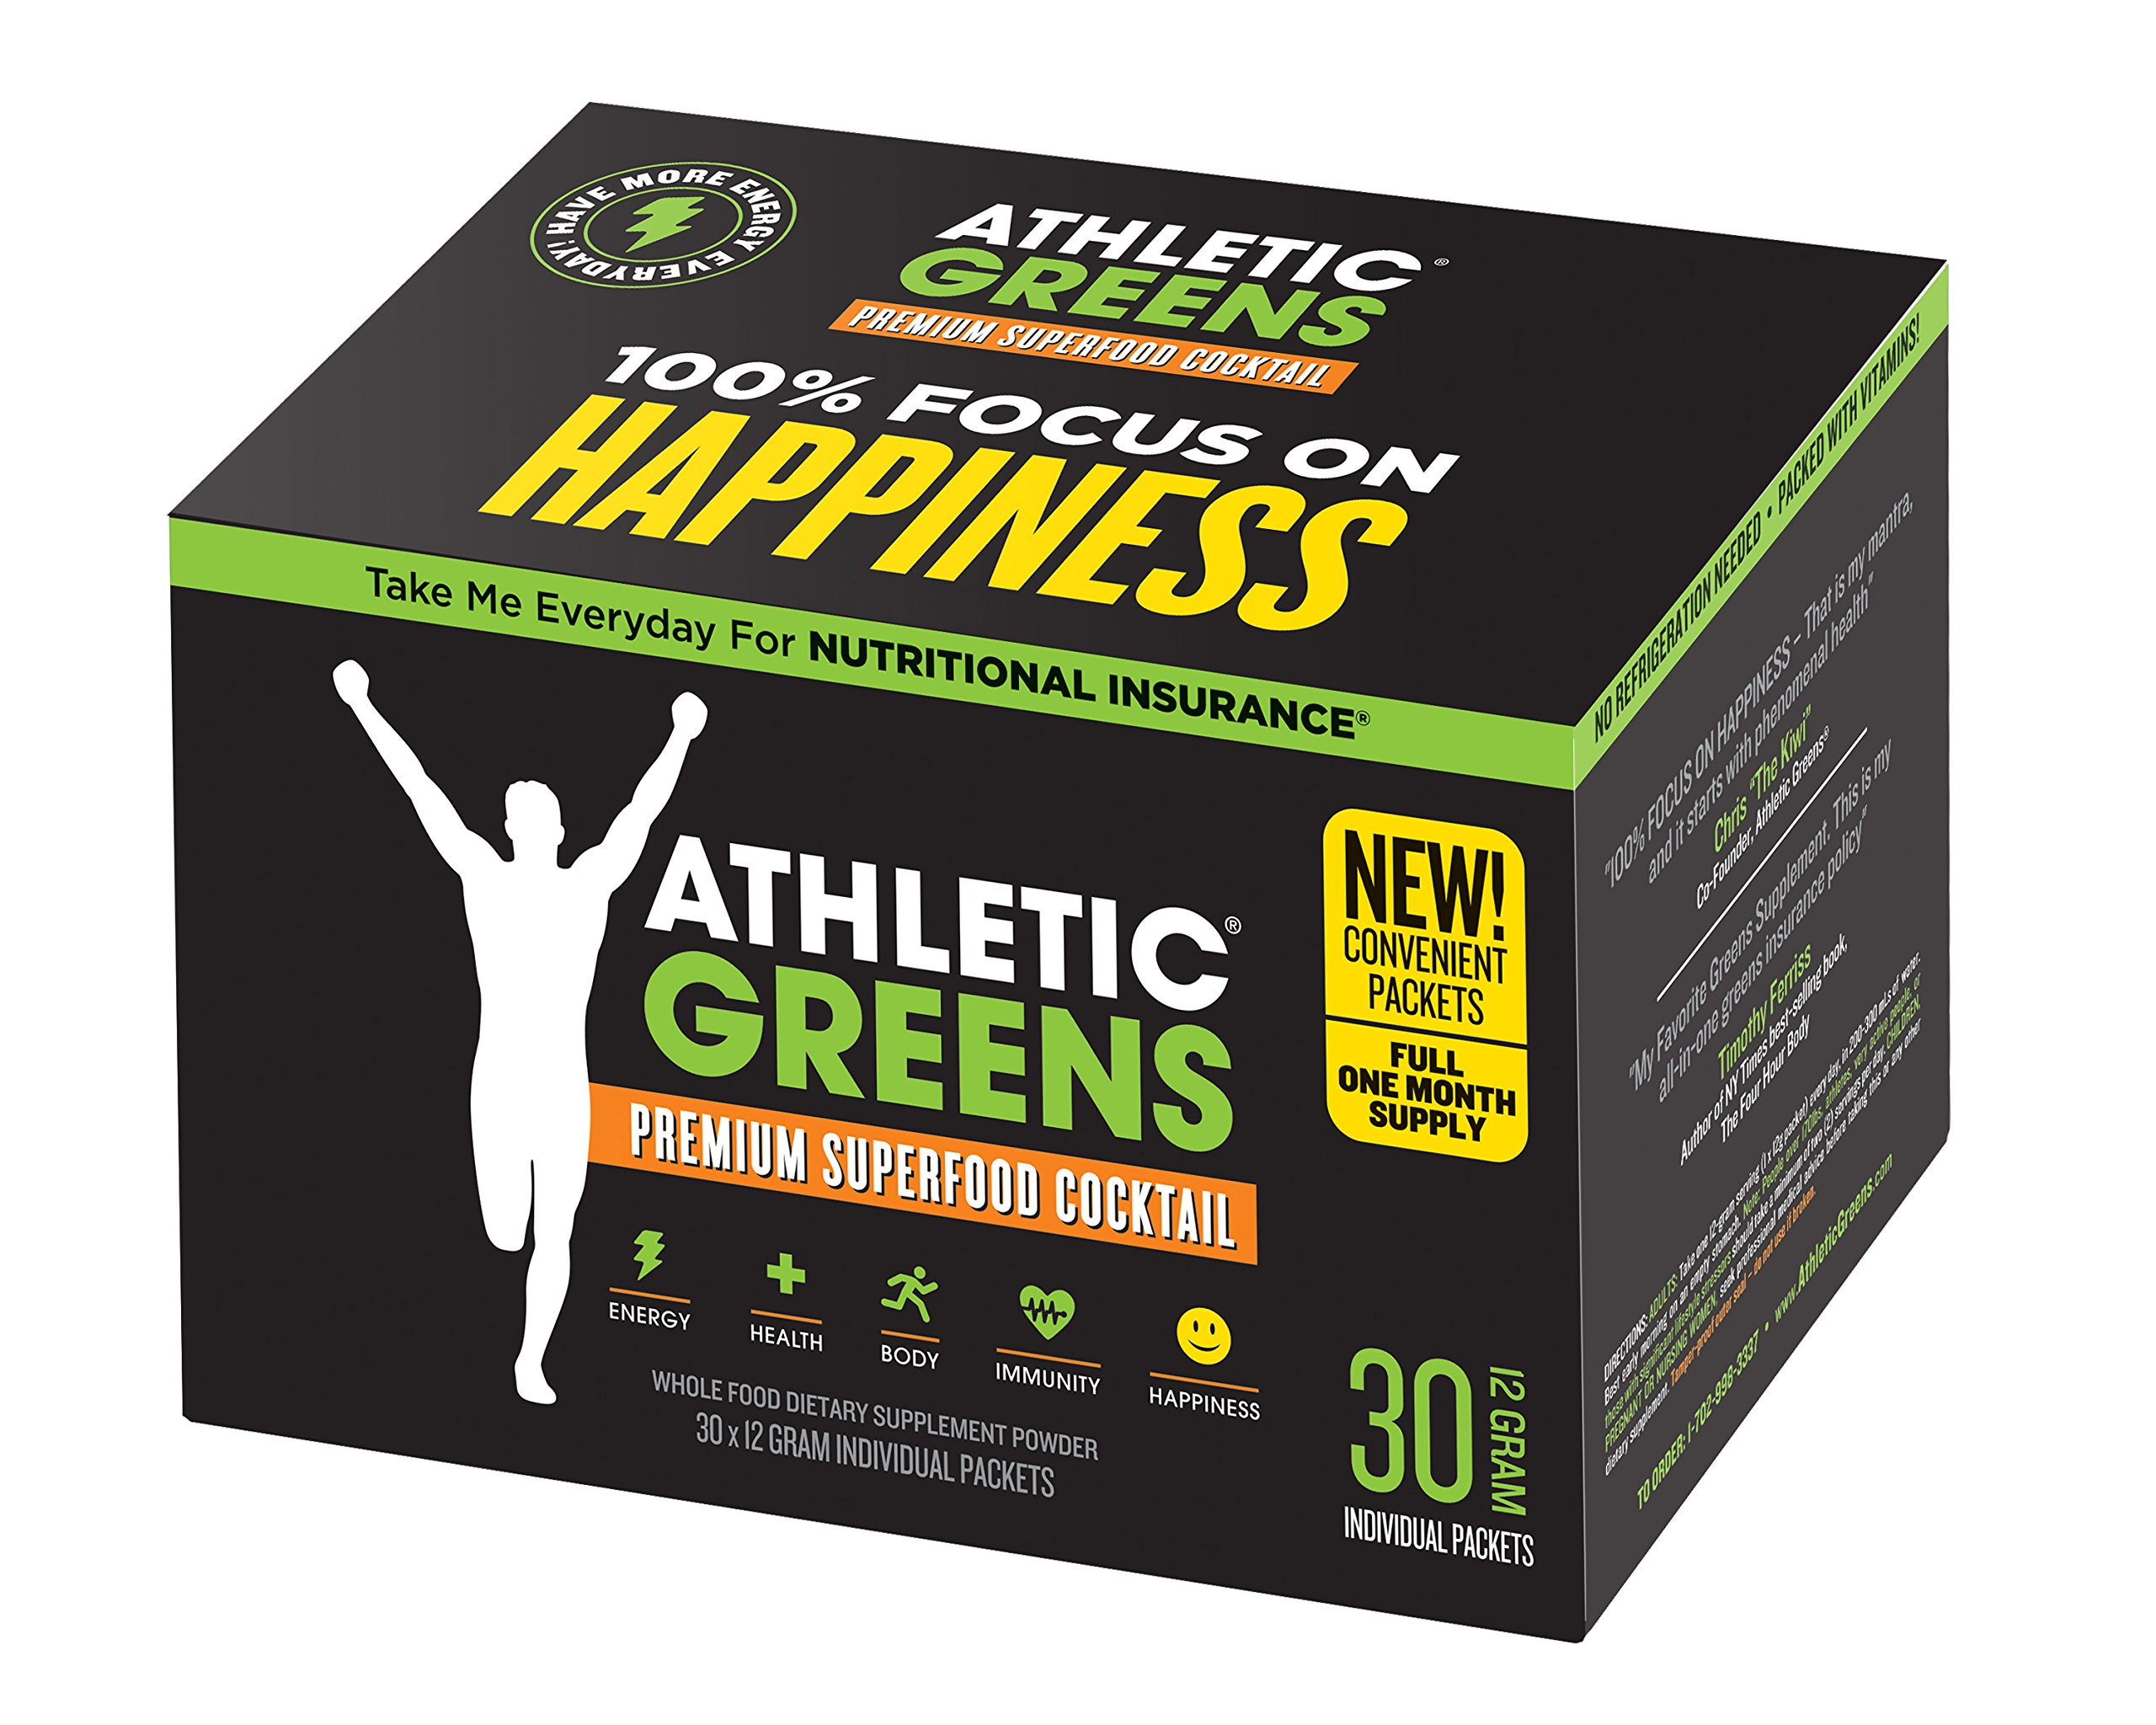 Athletic Greens - Premium Green Superfood Cocktail - Complete Greens Powder Drink - Daily Probiotic - Multivitamin - Antioxidant - Alkaline - Vegan - Non-GMO - Gluten Free - 30 Day Travel Packs